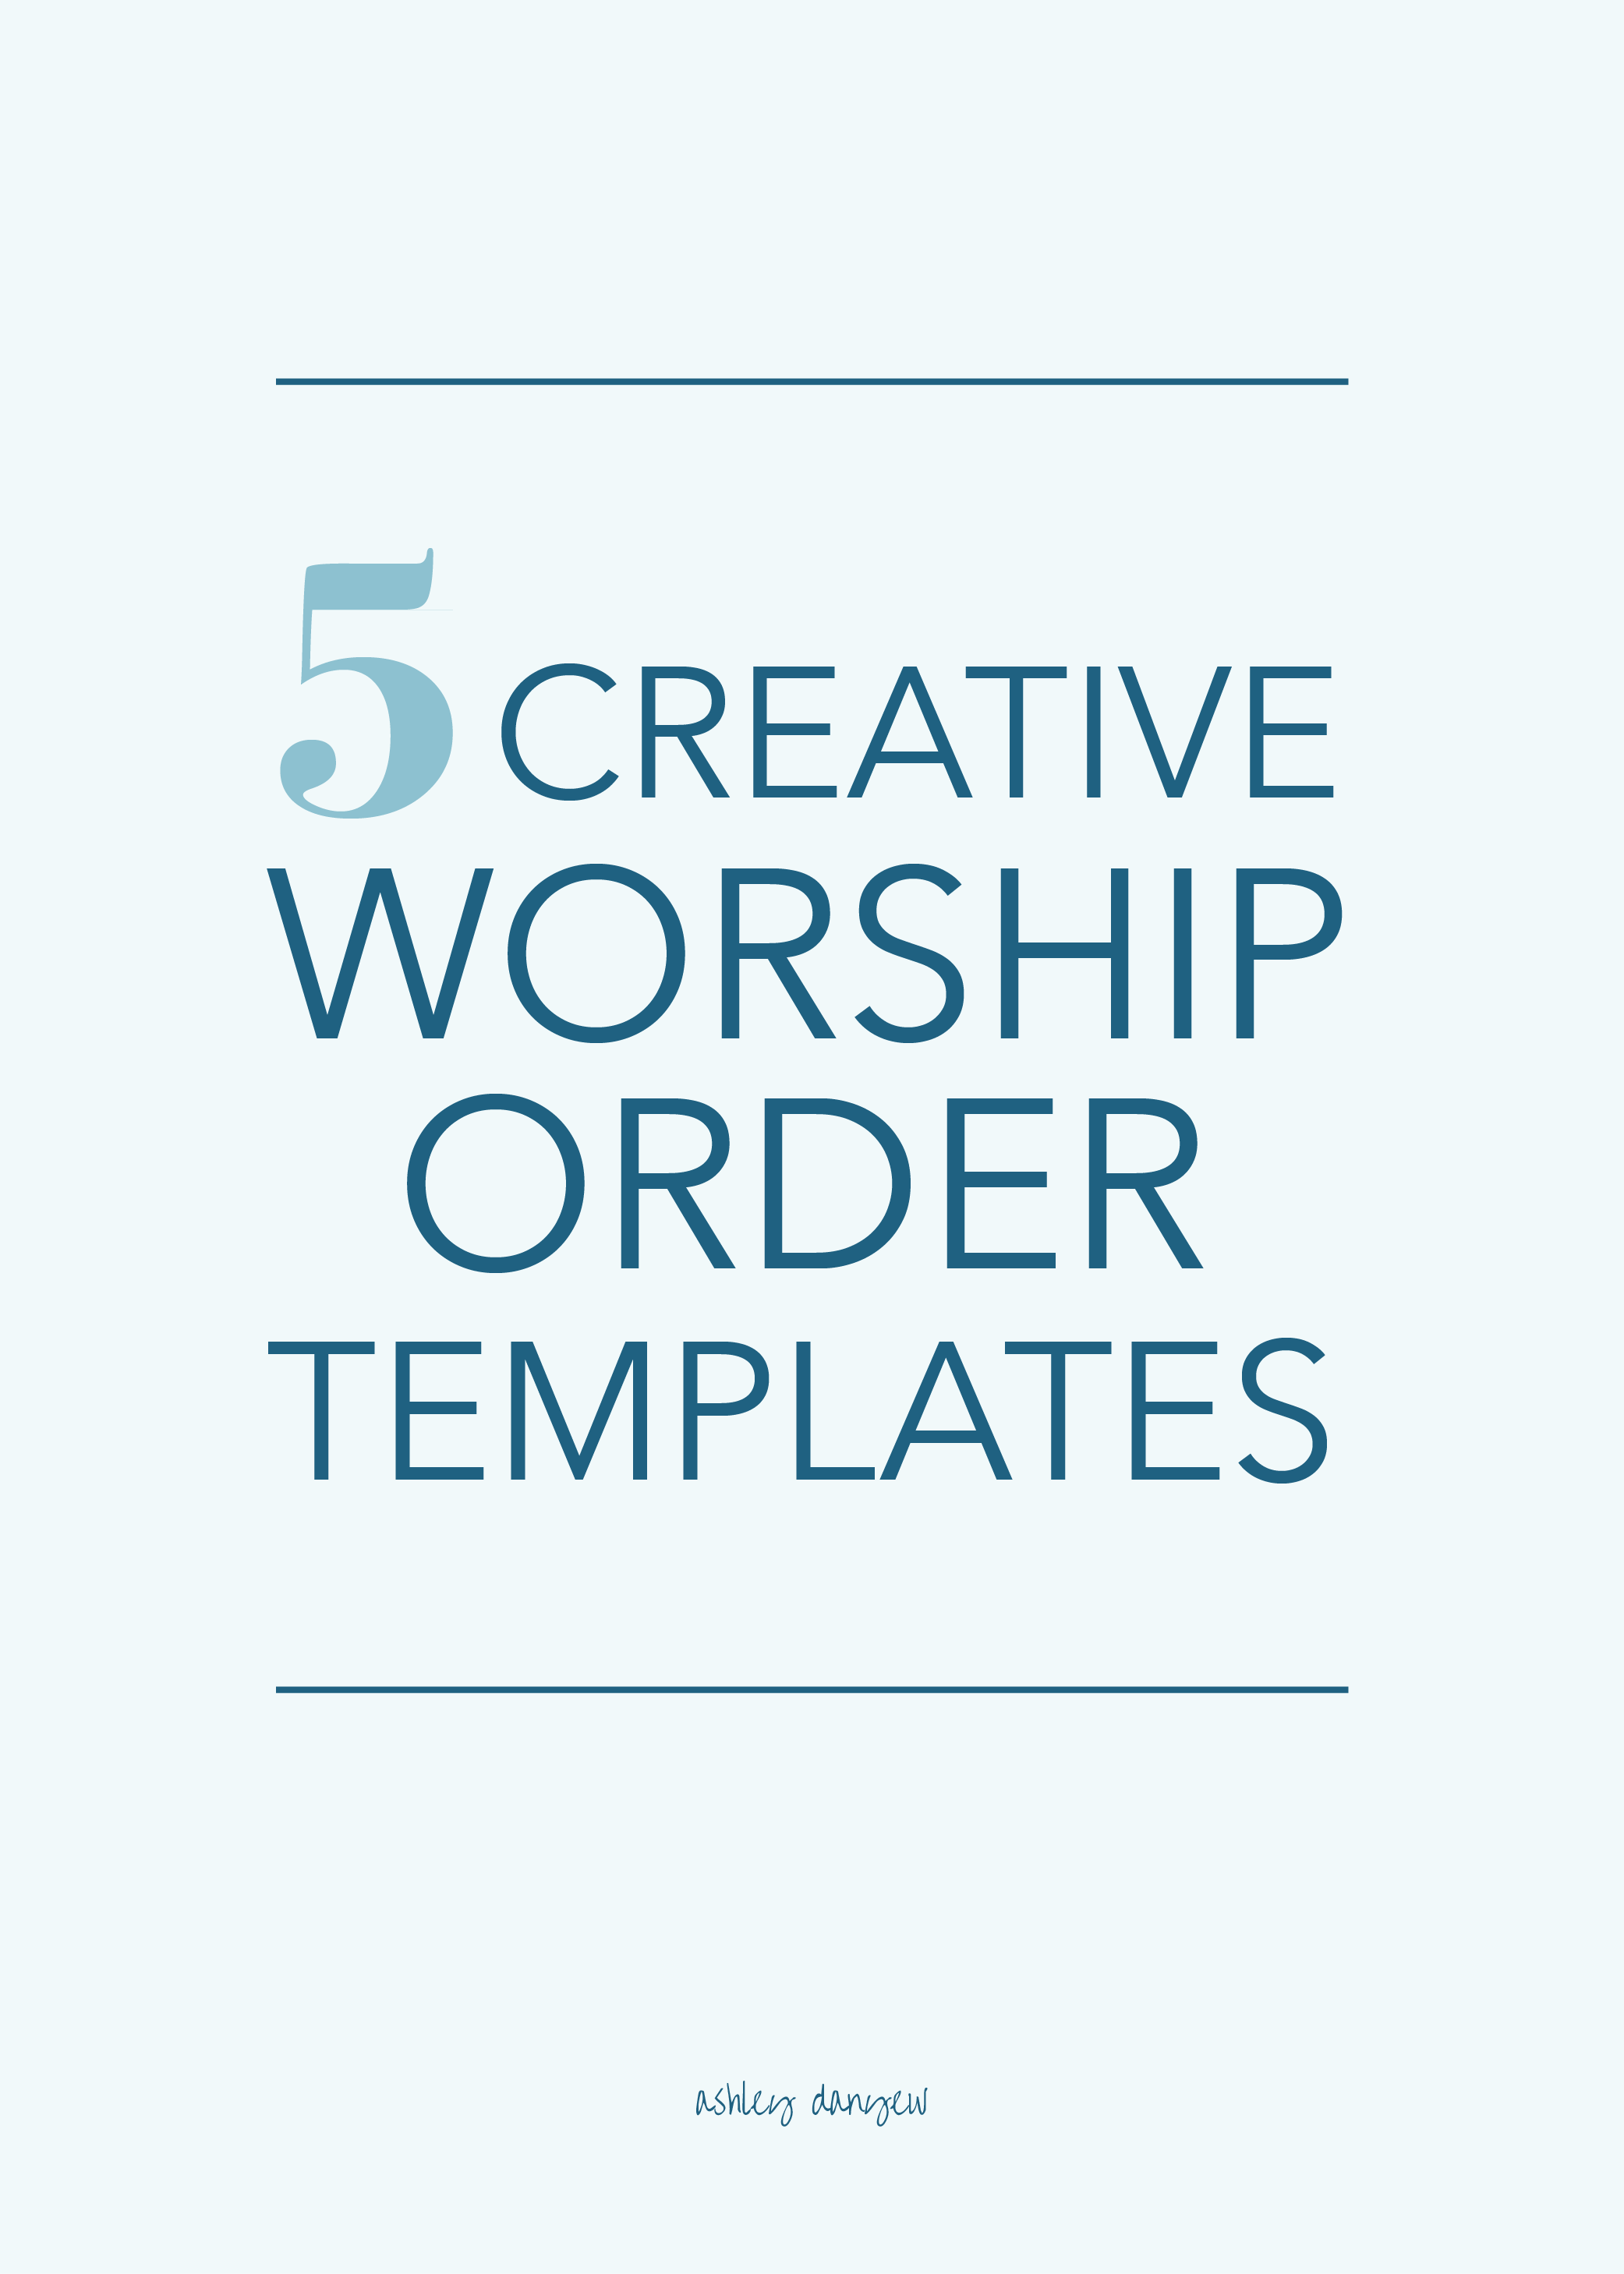 Copy of 5 Creative Worship Order Templates